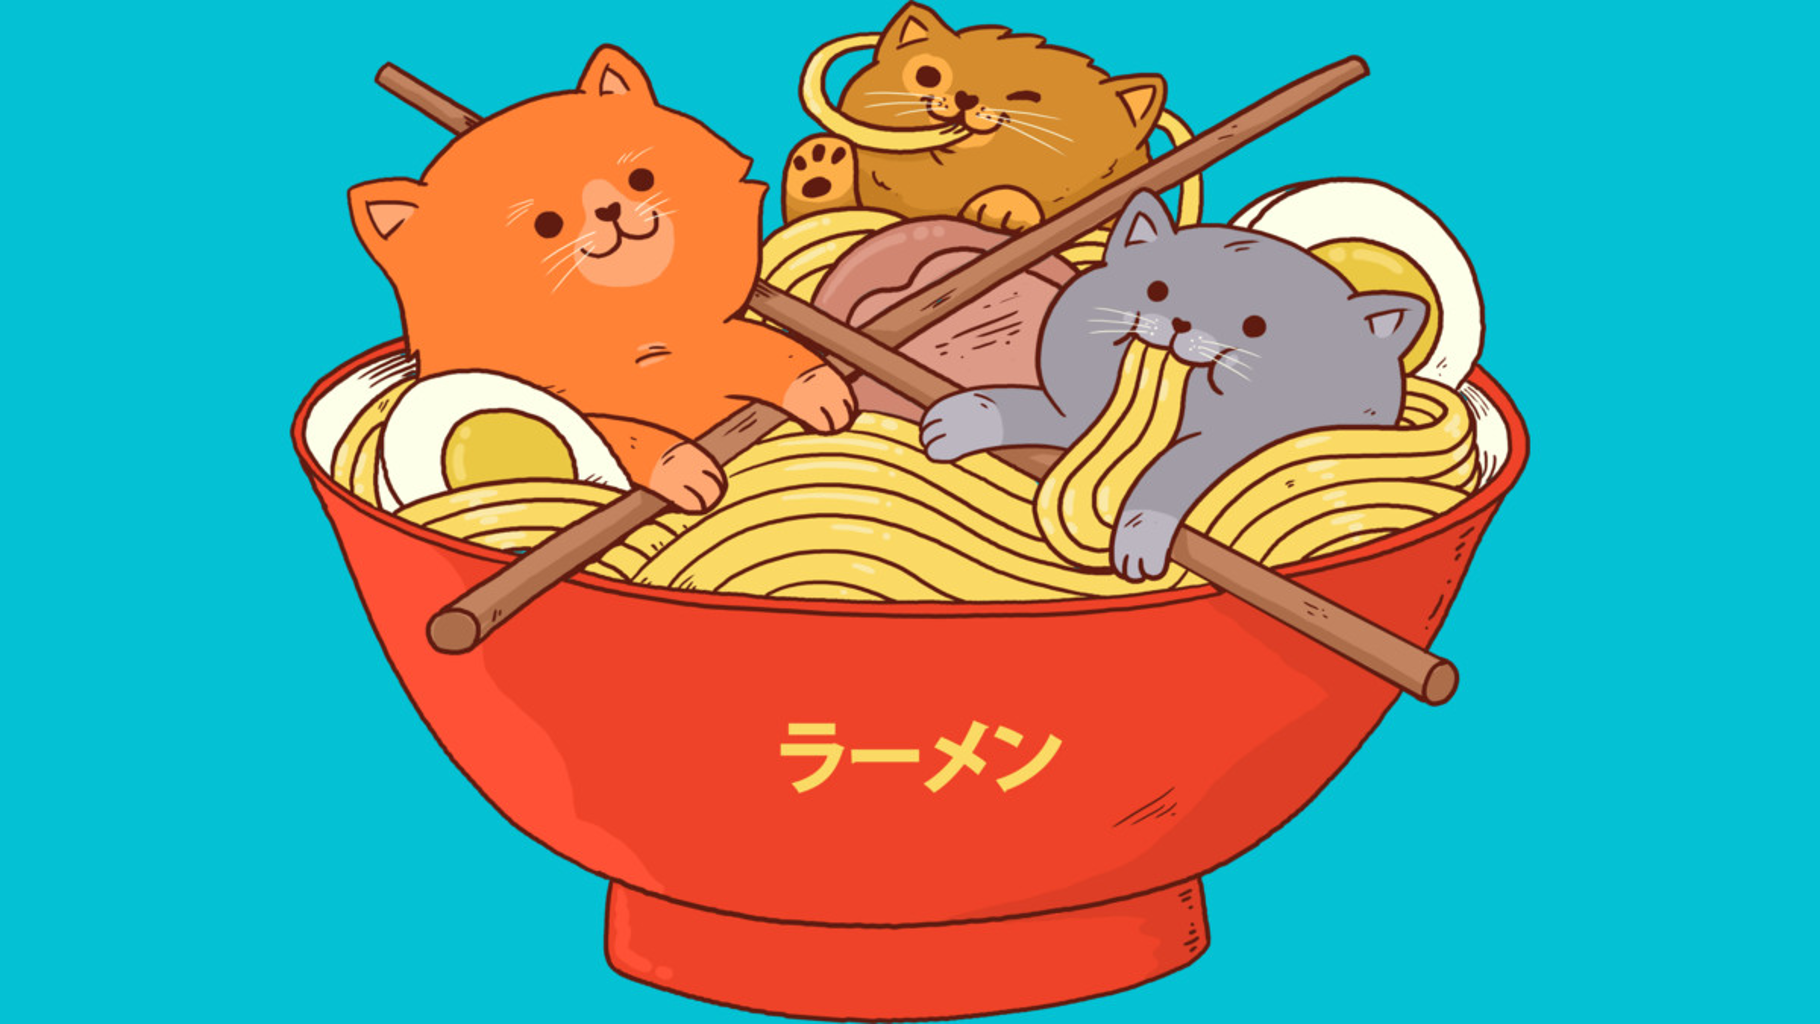 Design by Humans: Ramen noodles and cats